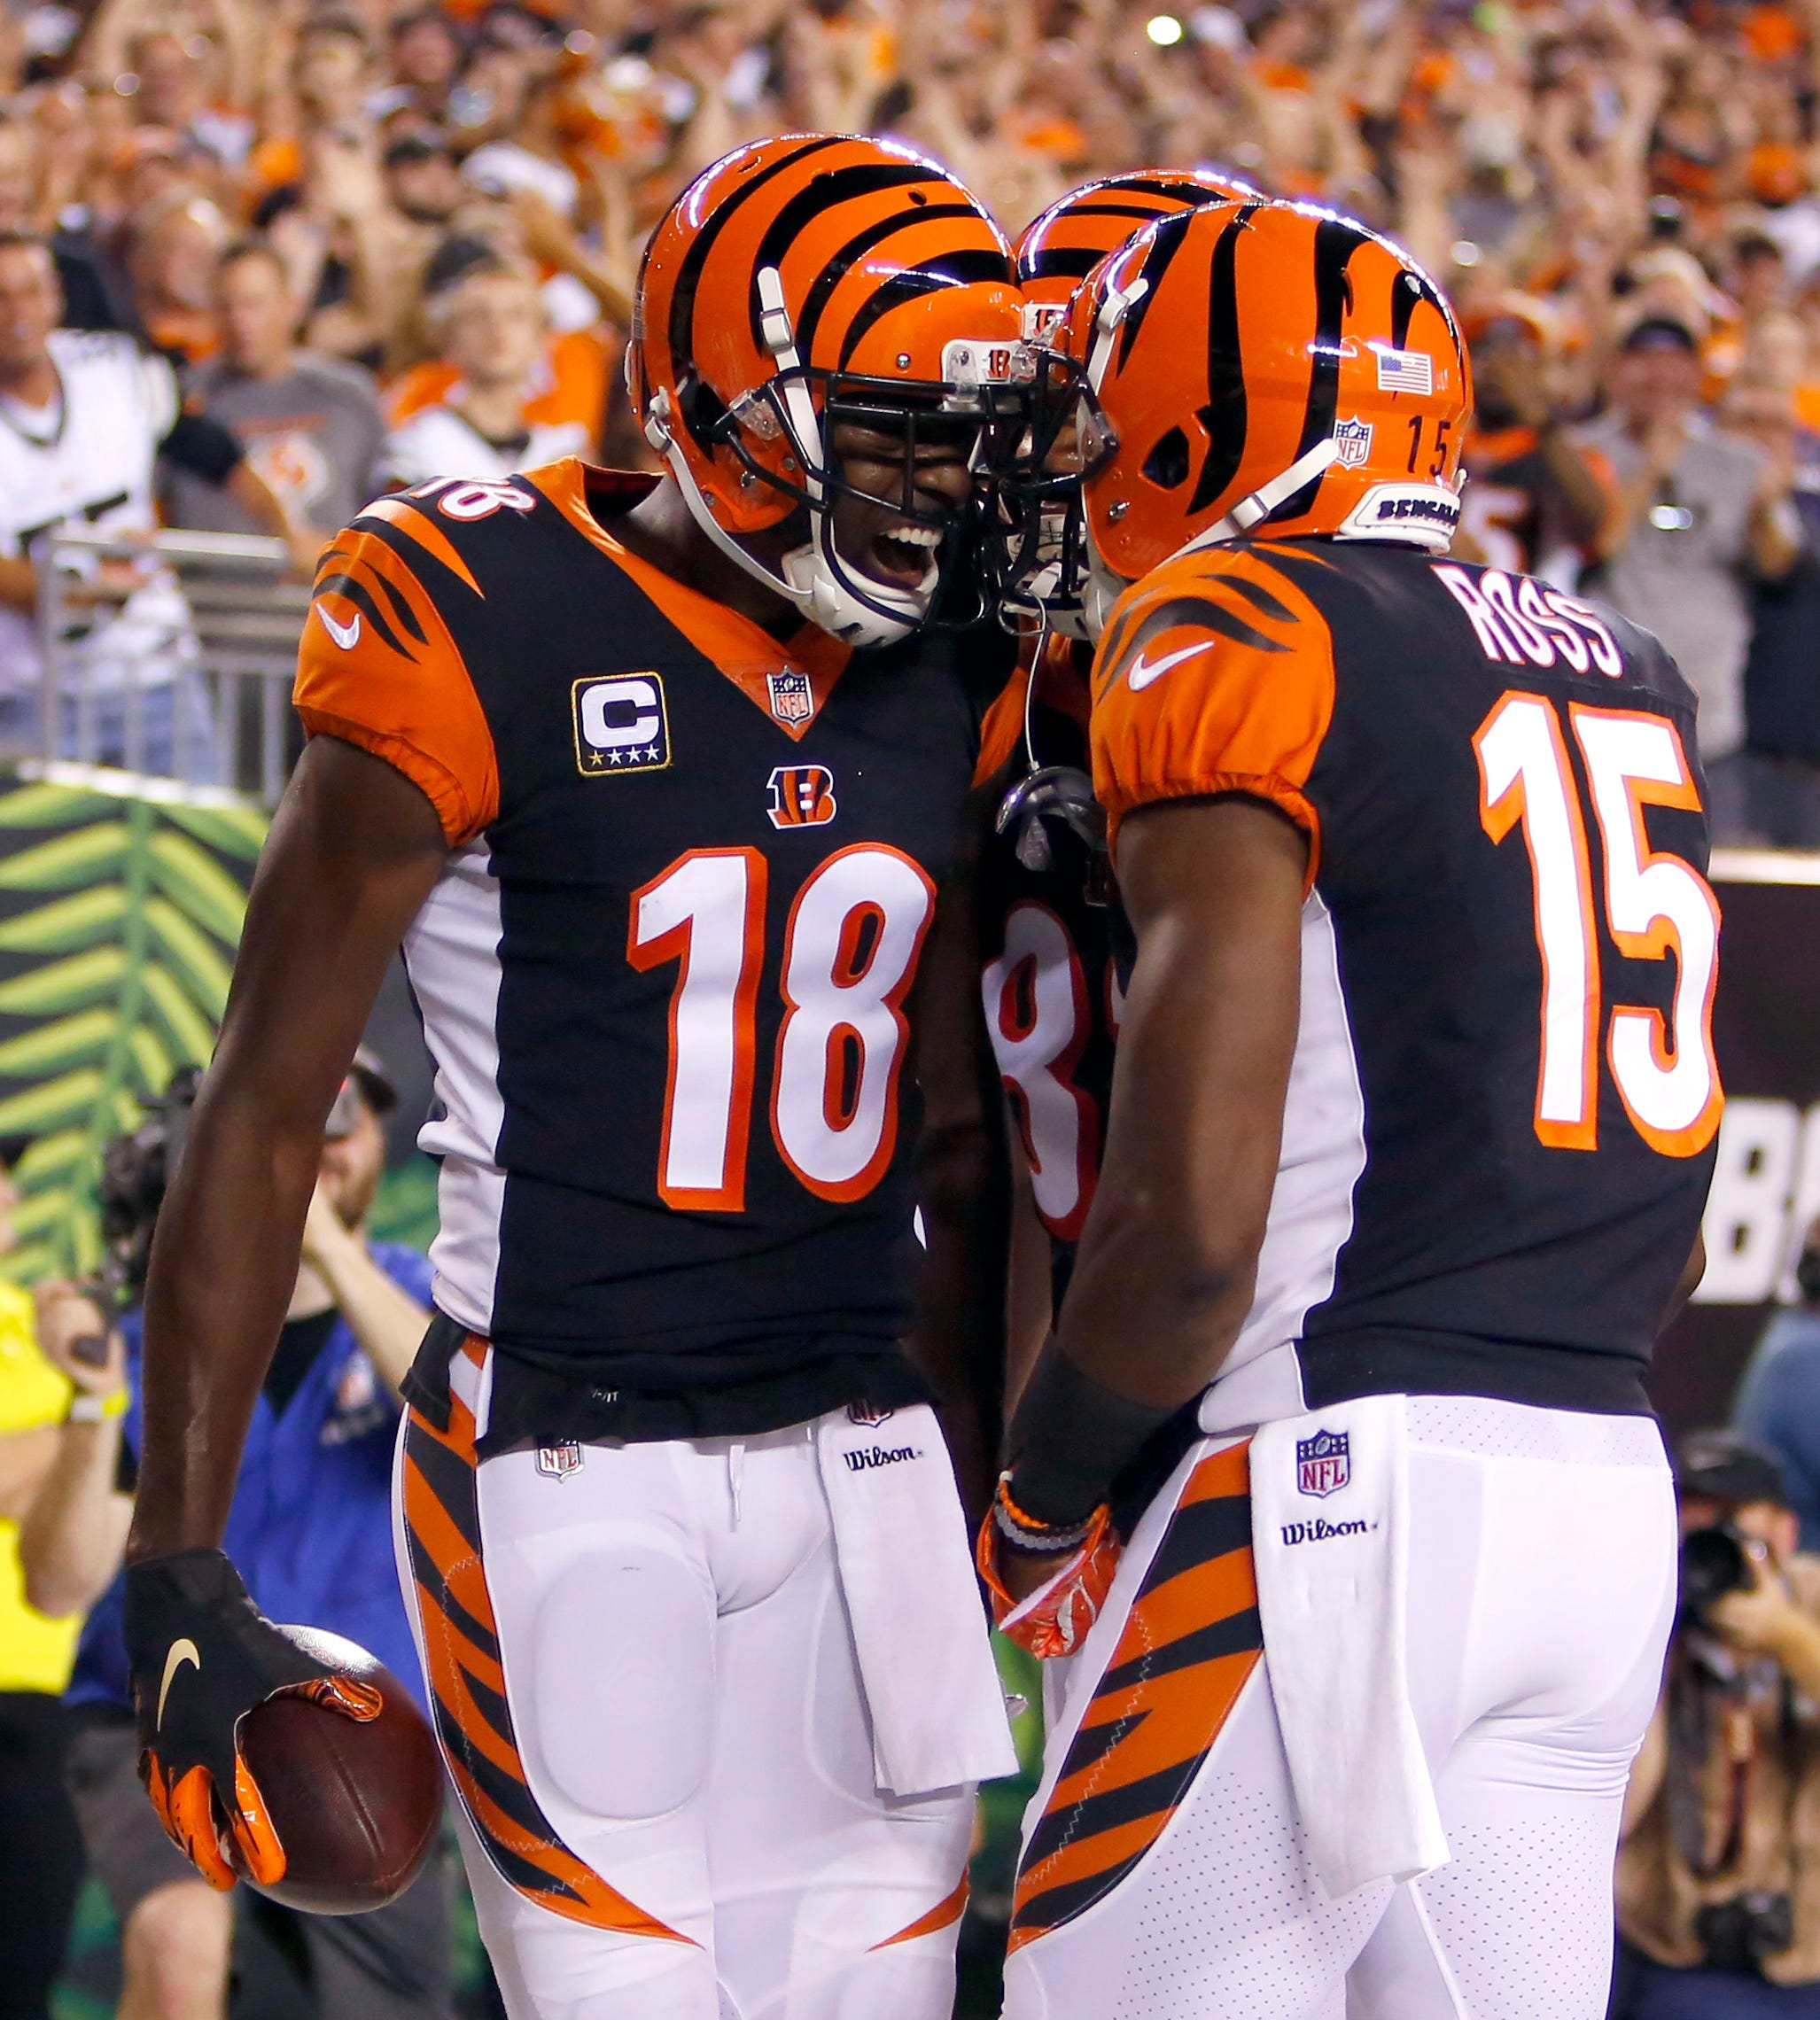 Nfl Baltimore Ravens At Cincinnati Bengals